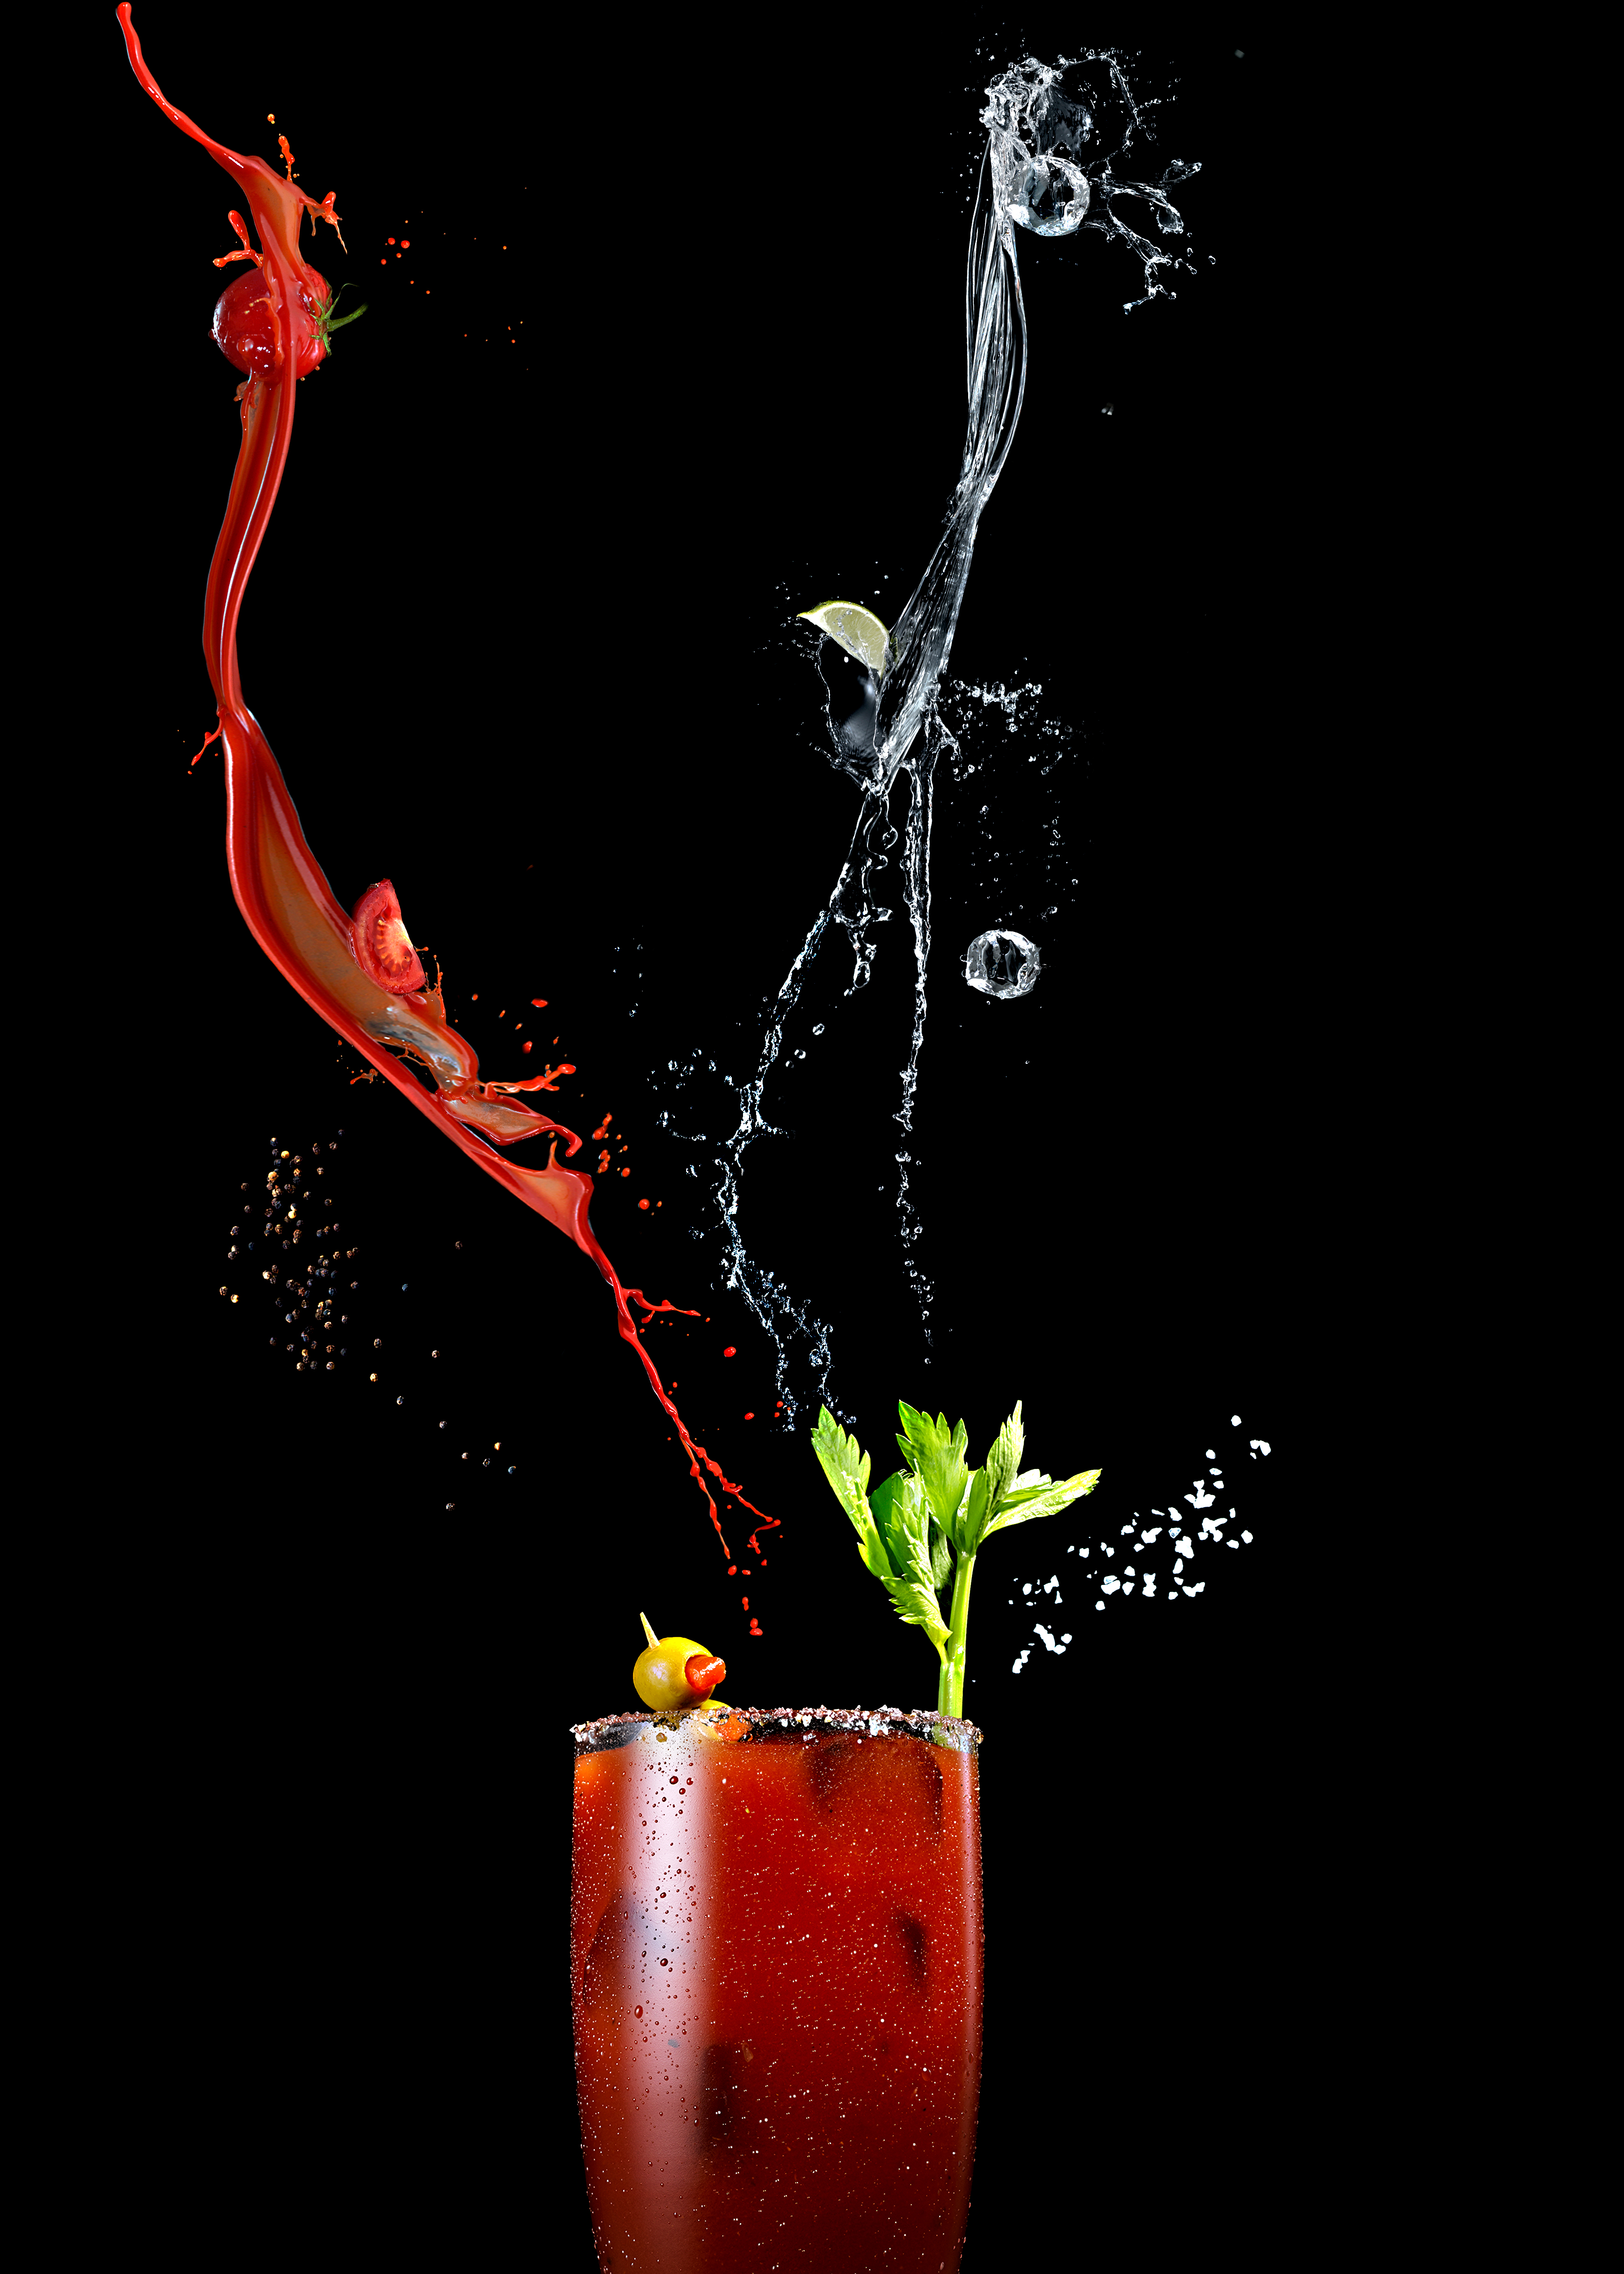 Vijey Mohan | Product & Liquid Photographer based in Los Angeles, California.   This shot was done by Vijey Mohan with splashes of vodka, Tomato juice to showcase the beauty of a bloody mary cocktail with the ingredients.